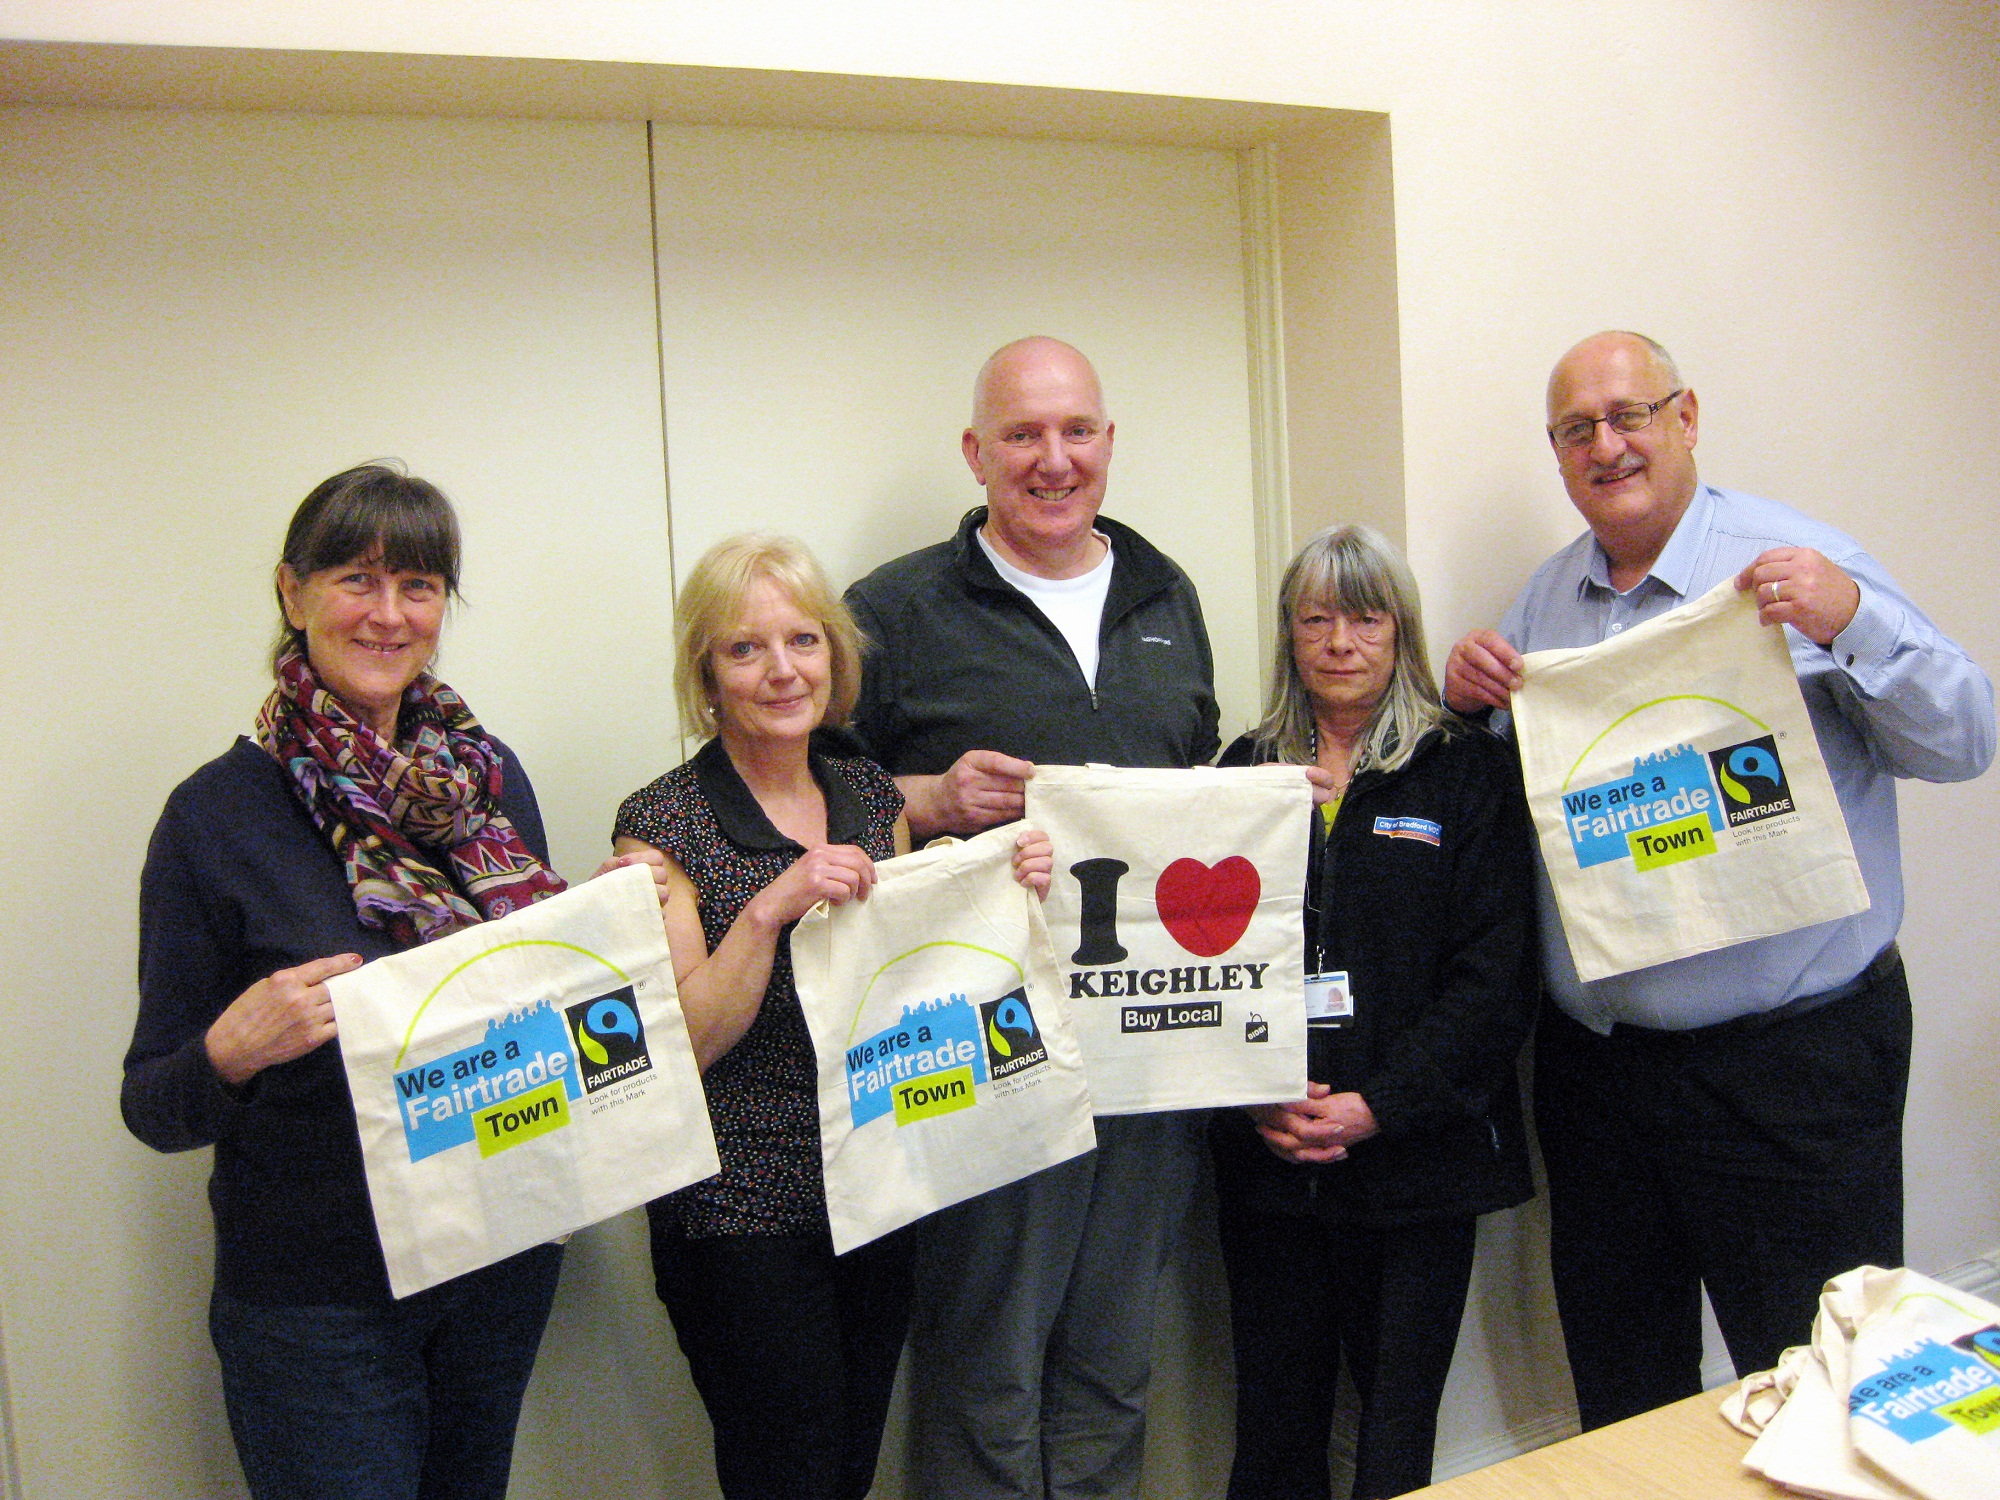 Fairtrade Keighley steering group members, from left, Chris Goddard, Steph Bottomley, Richard Dillon, Diane Ramsden and Steve Seymour, promoti